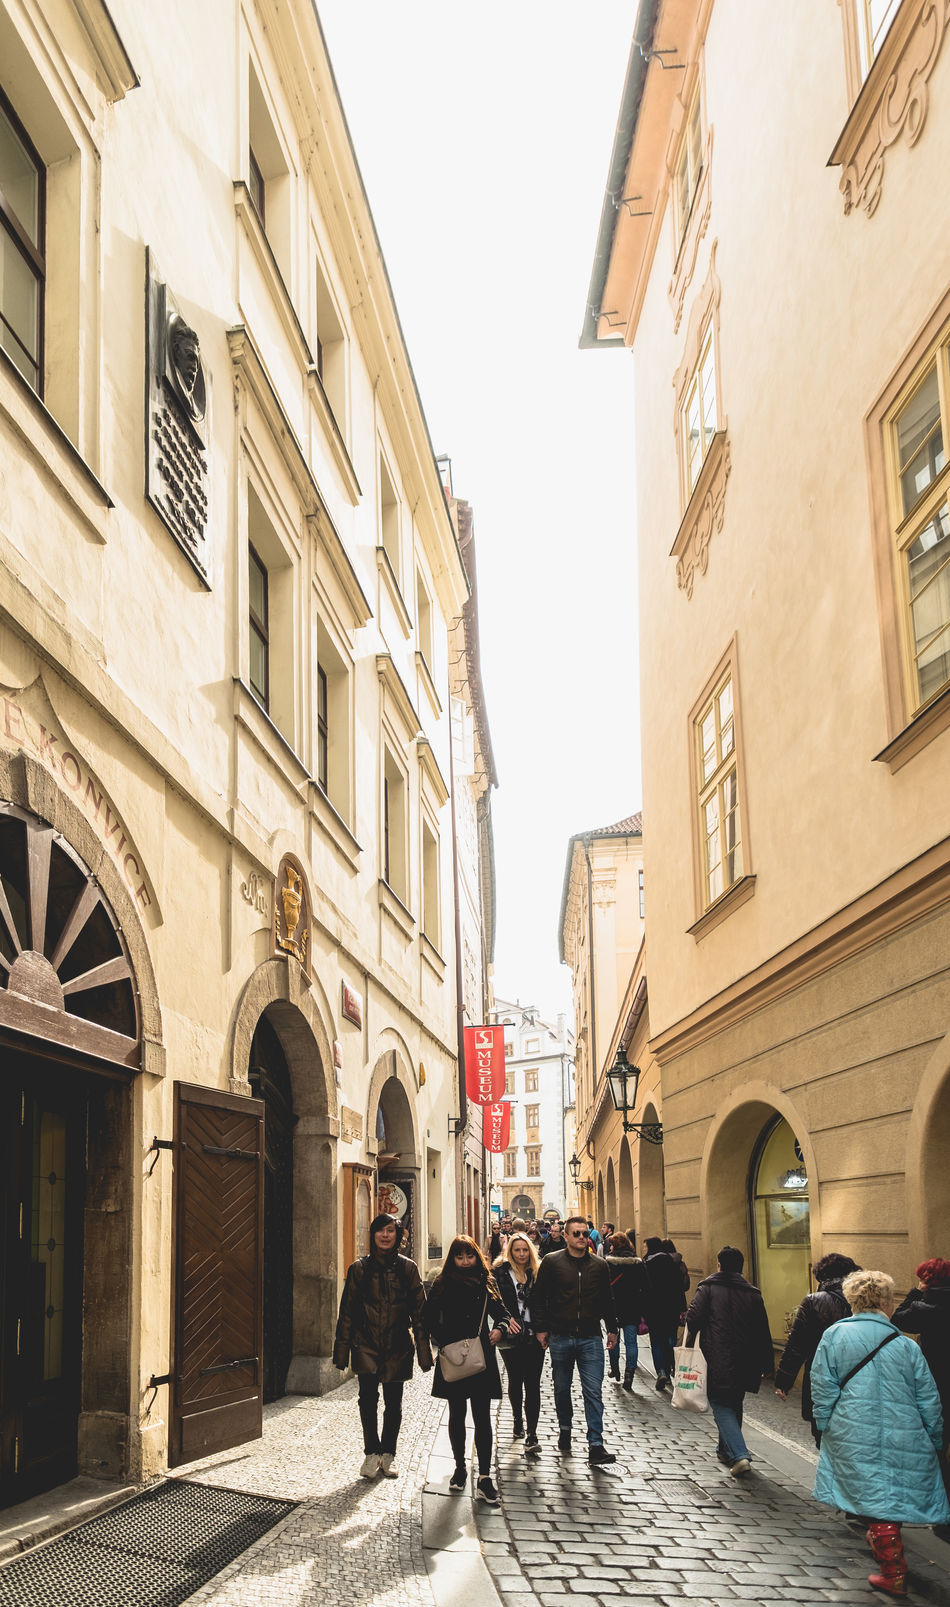 Street in City life Adult Architecture Building Exterior Built Structure City City Life City Street Day Large Group Of People Men Only Men Outdoors People Prague, Czech Republic Silhouette Silhouette Photography Sky Street Photography Streetphotography Travel Destinations Walking Around The City